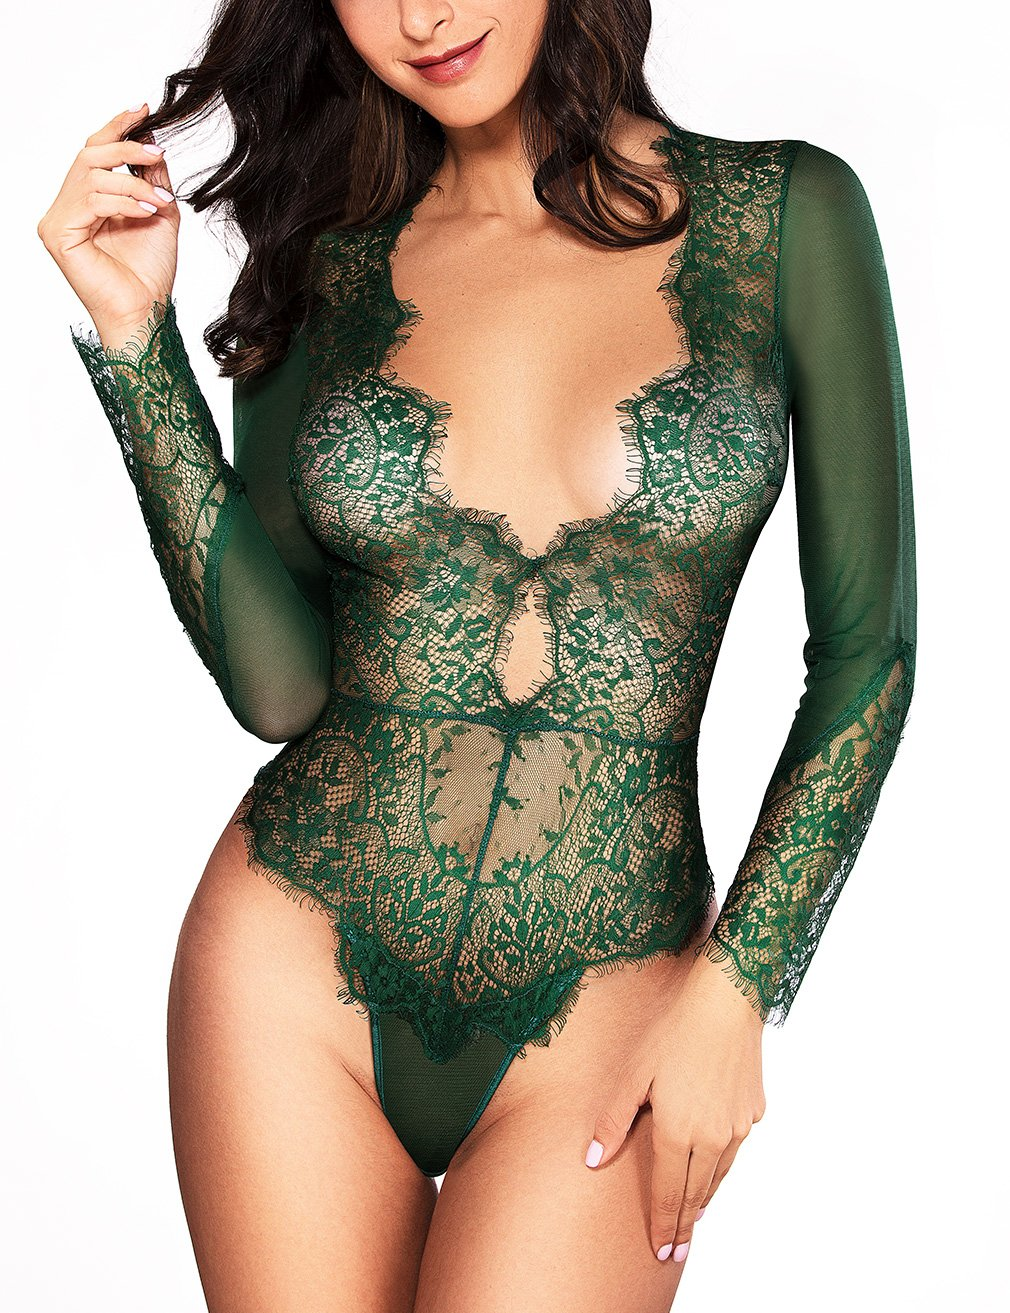 LOVE YOU SEXY Women Sexy Lingerie Long Sleeve Bodysuit Lace Deep V Bodysuit Lingerie Sheer Teddy Lingerie